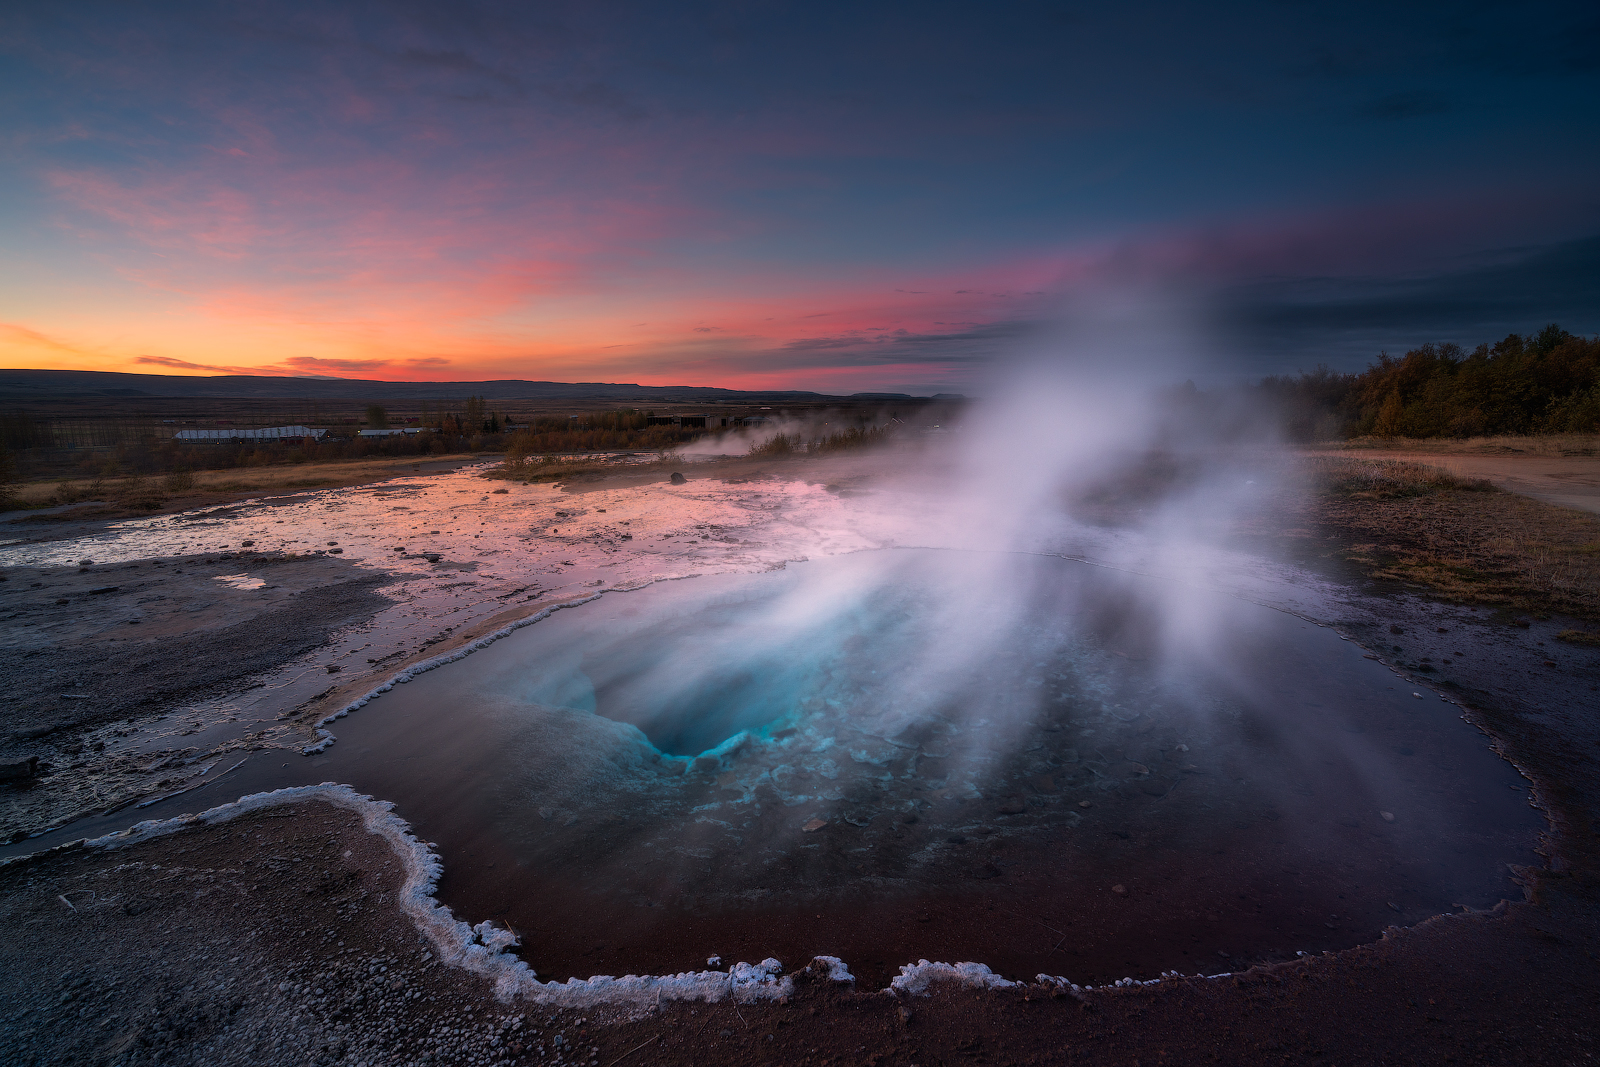 Strokkur hot spring erupting, gushing boiling geothermal water high into the air.